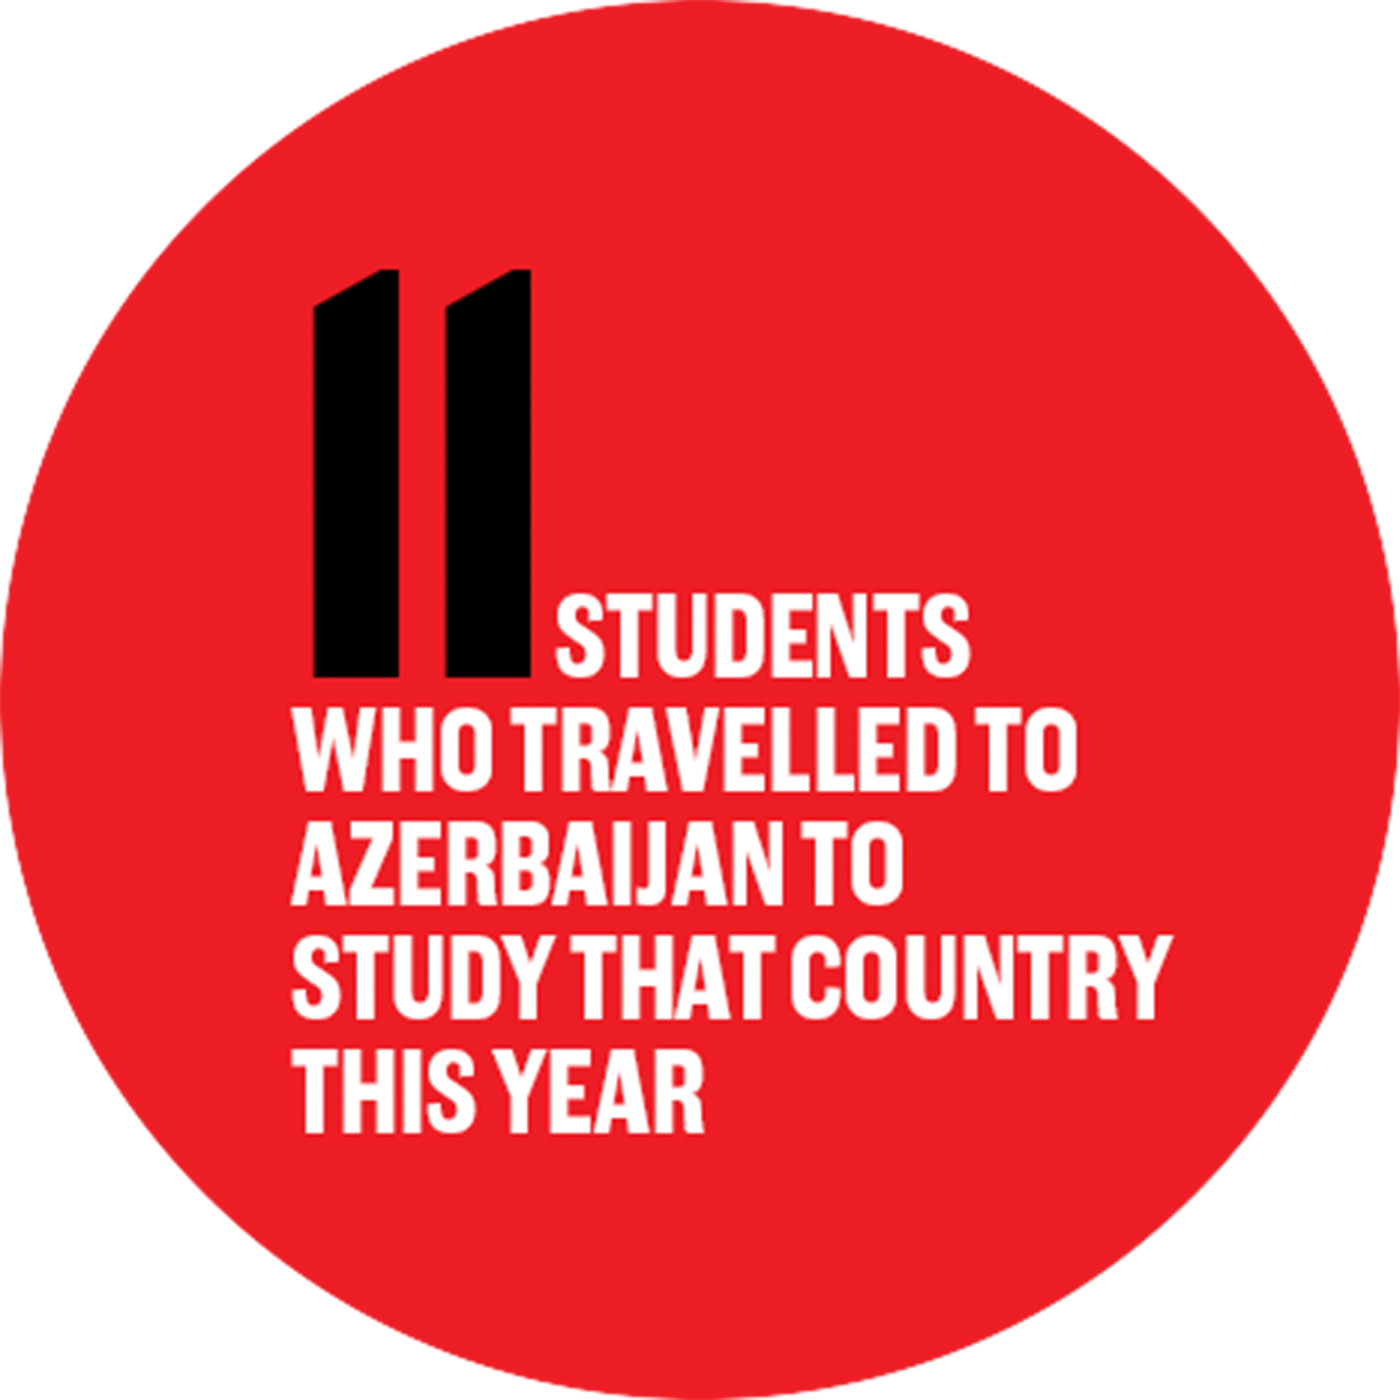 11 students who travelLed to Azerbaijan to study that country this year